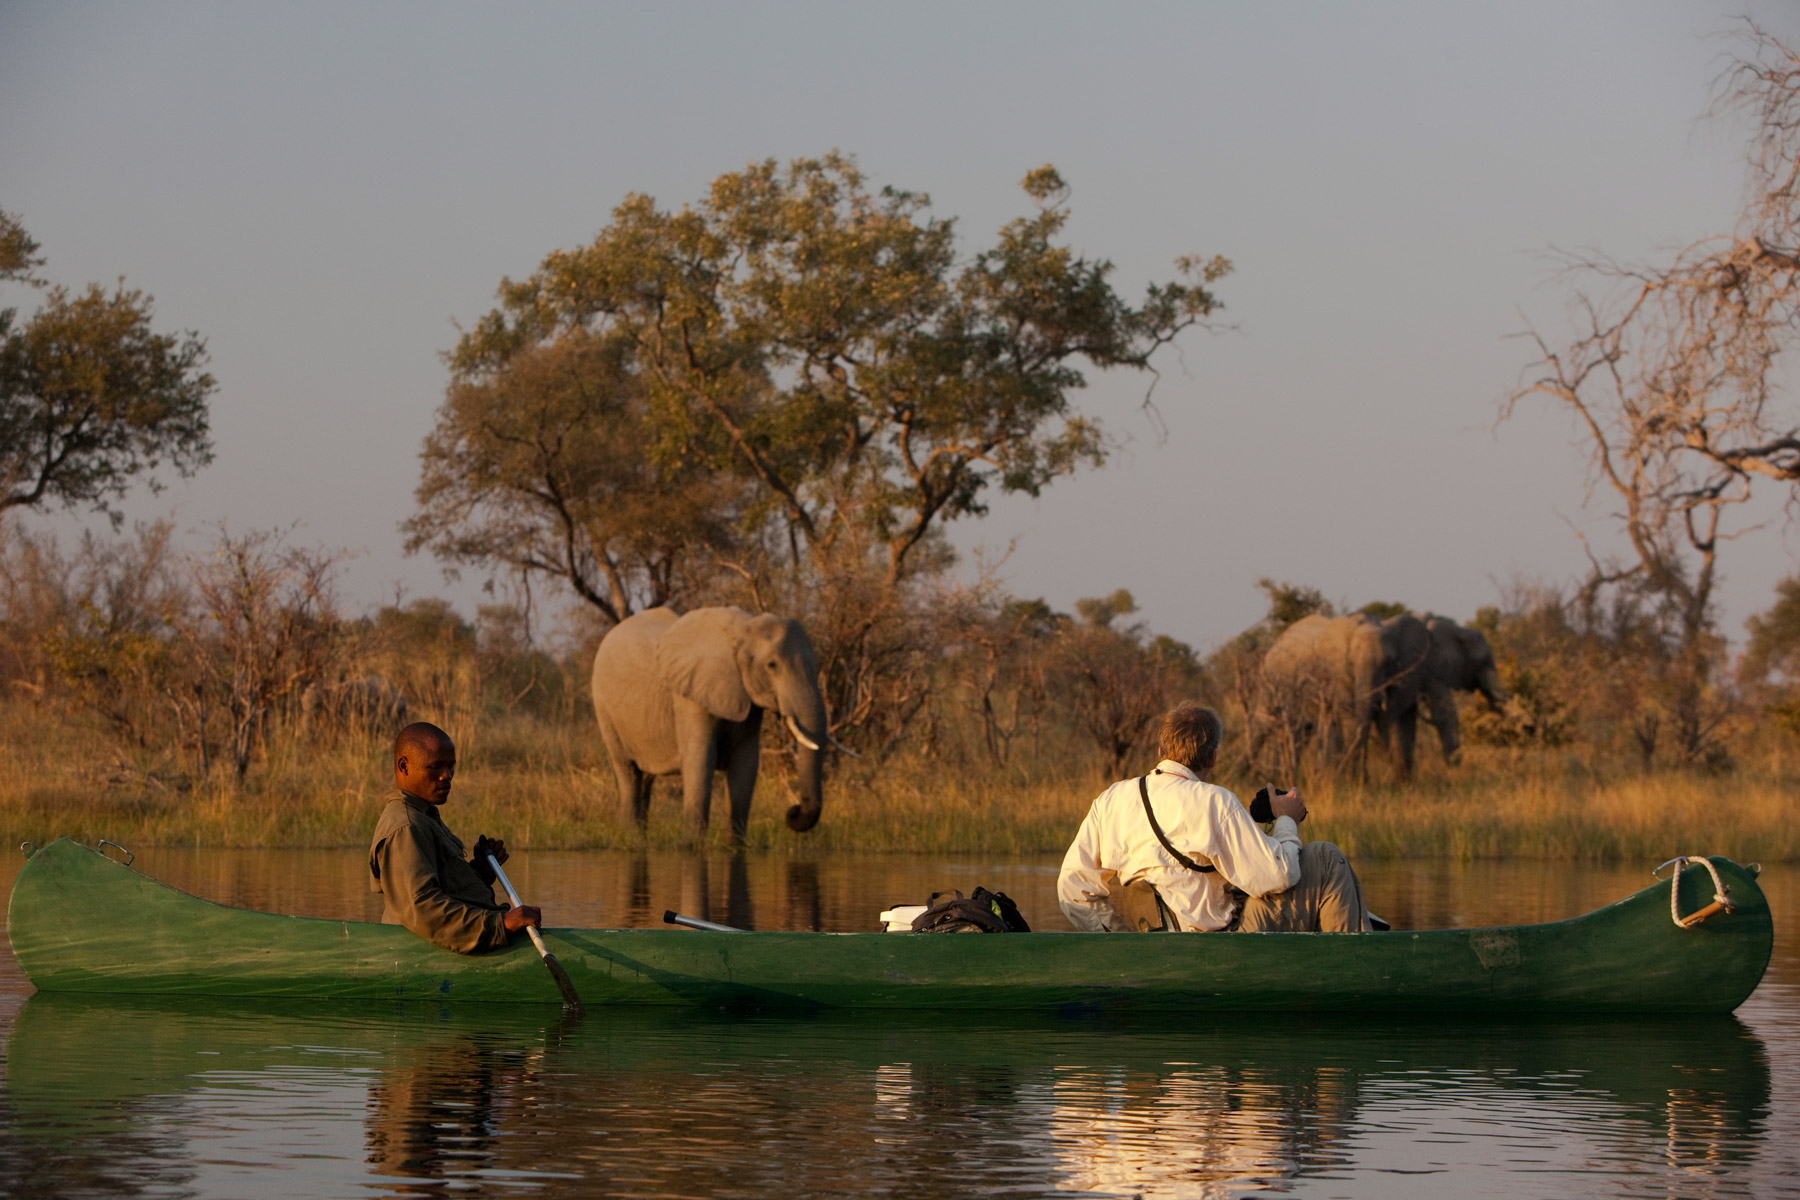 great_plains_explorers_canoe_elephant